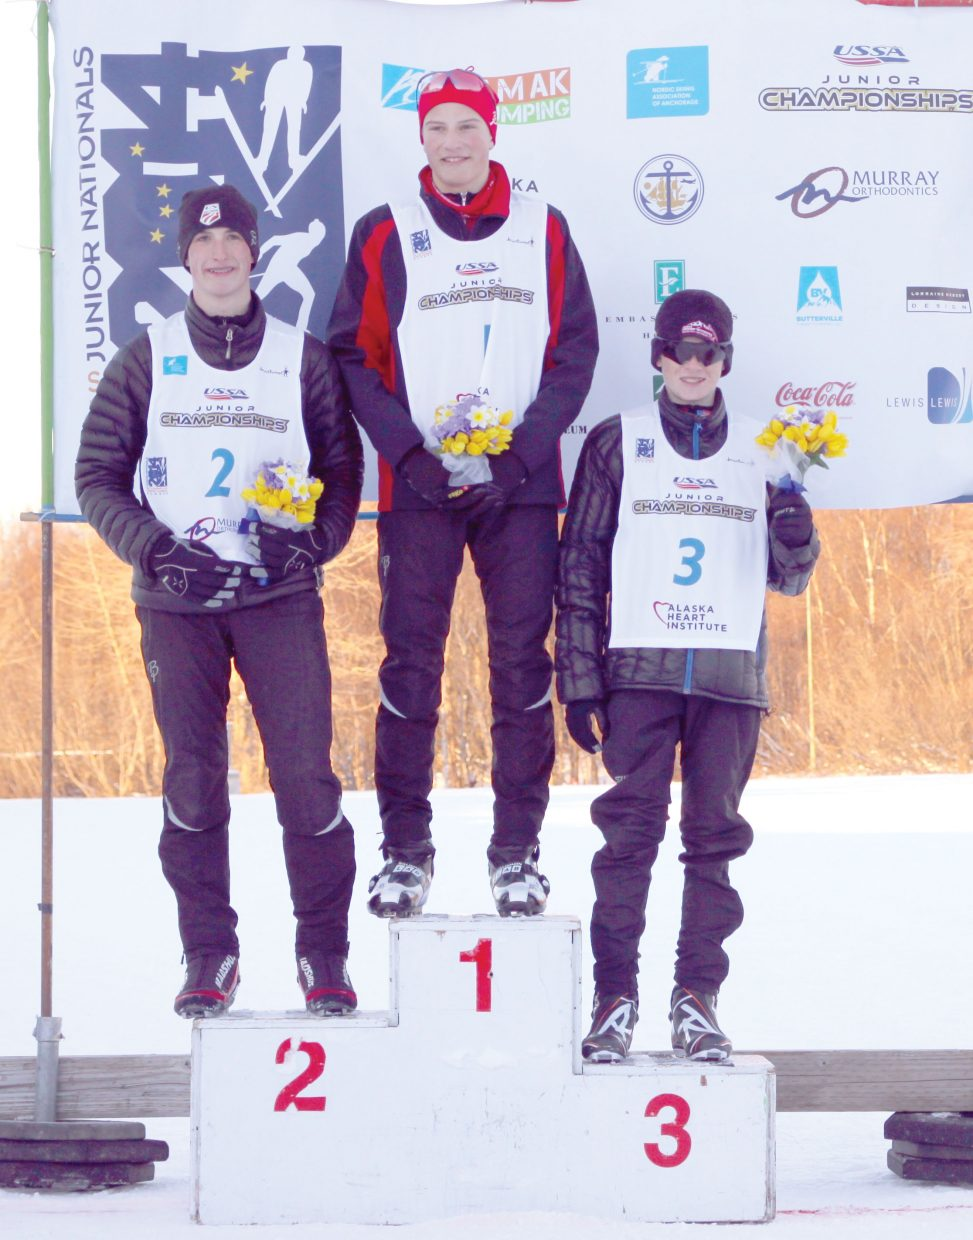 Ben Loomis, center, of the Central Division, won the boys Nordic combined title at this week's Junior National Championships. He shared the podium with Steamboat Springs skiers Grant Andrews, left, who finished second and Finn O'Connell, who finished third.